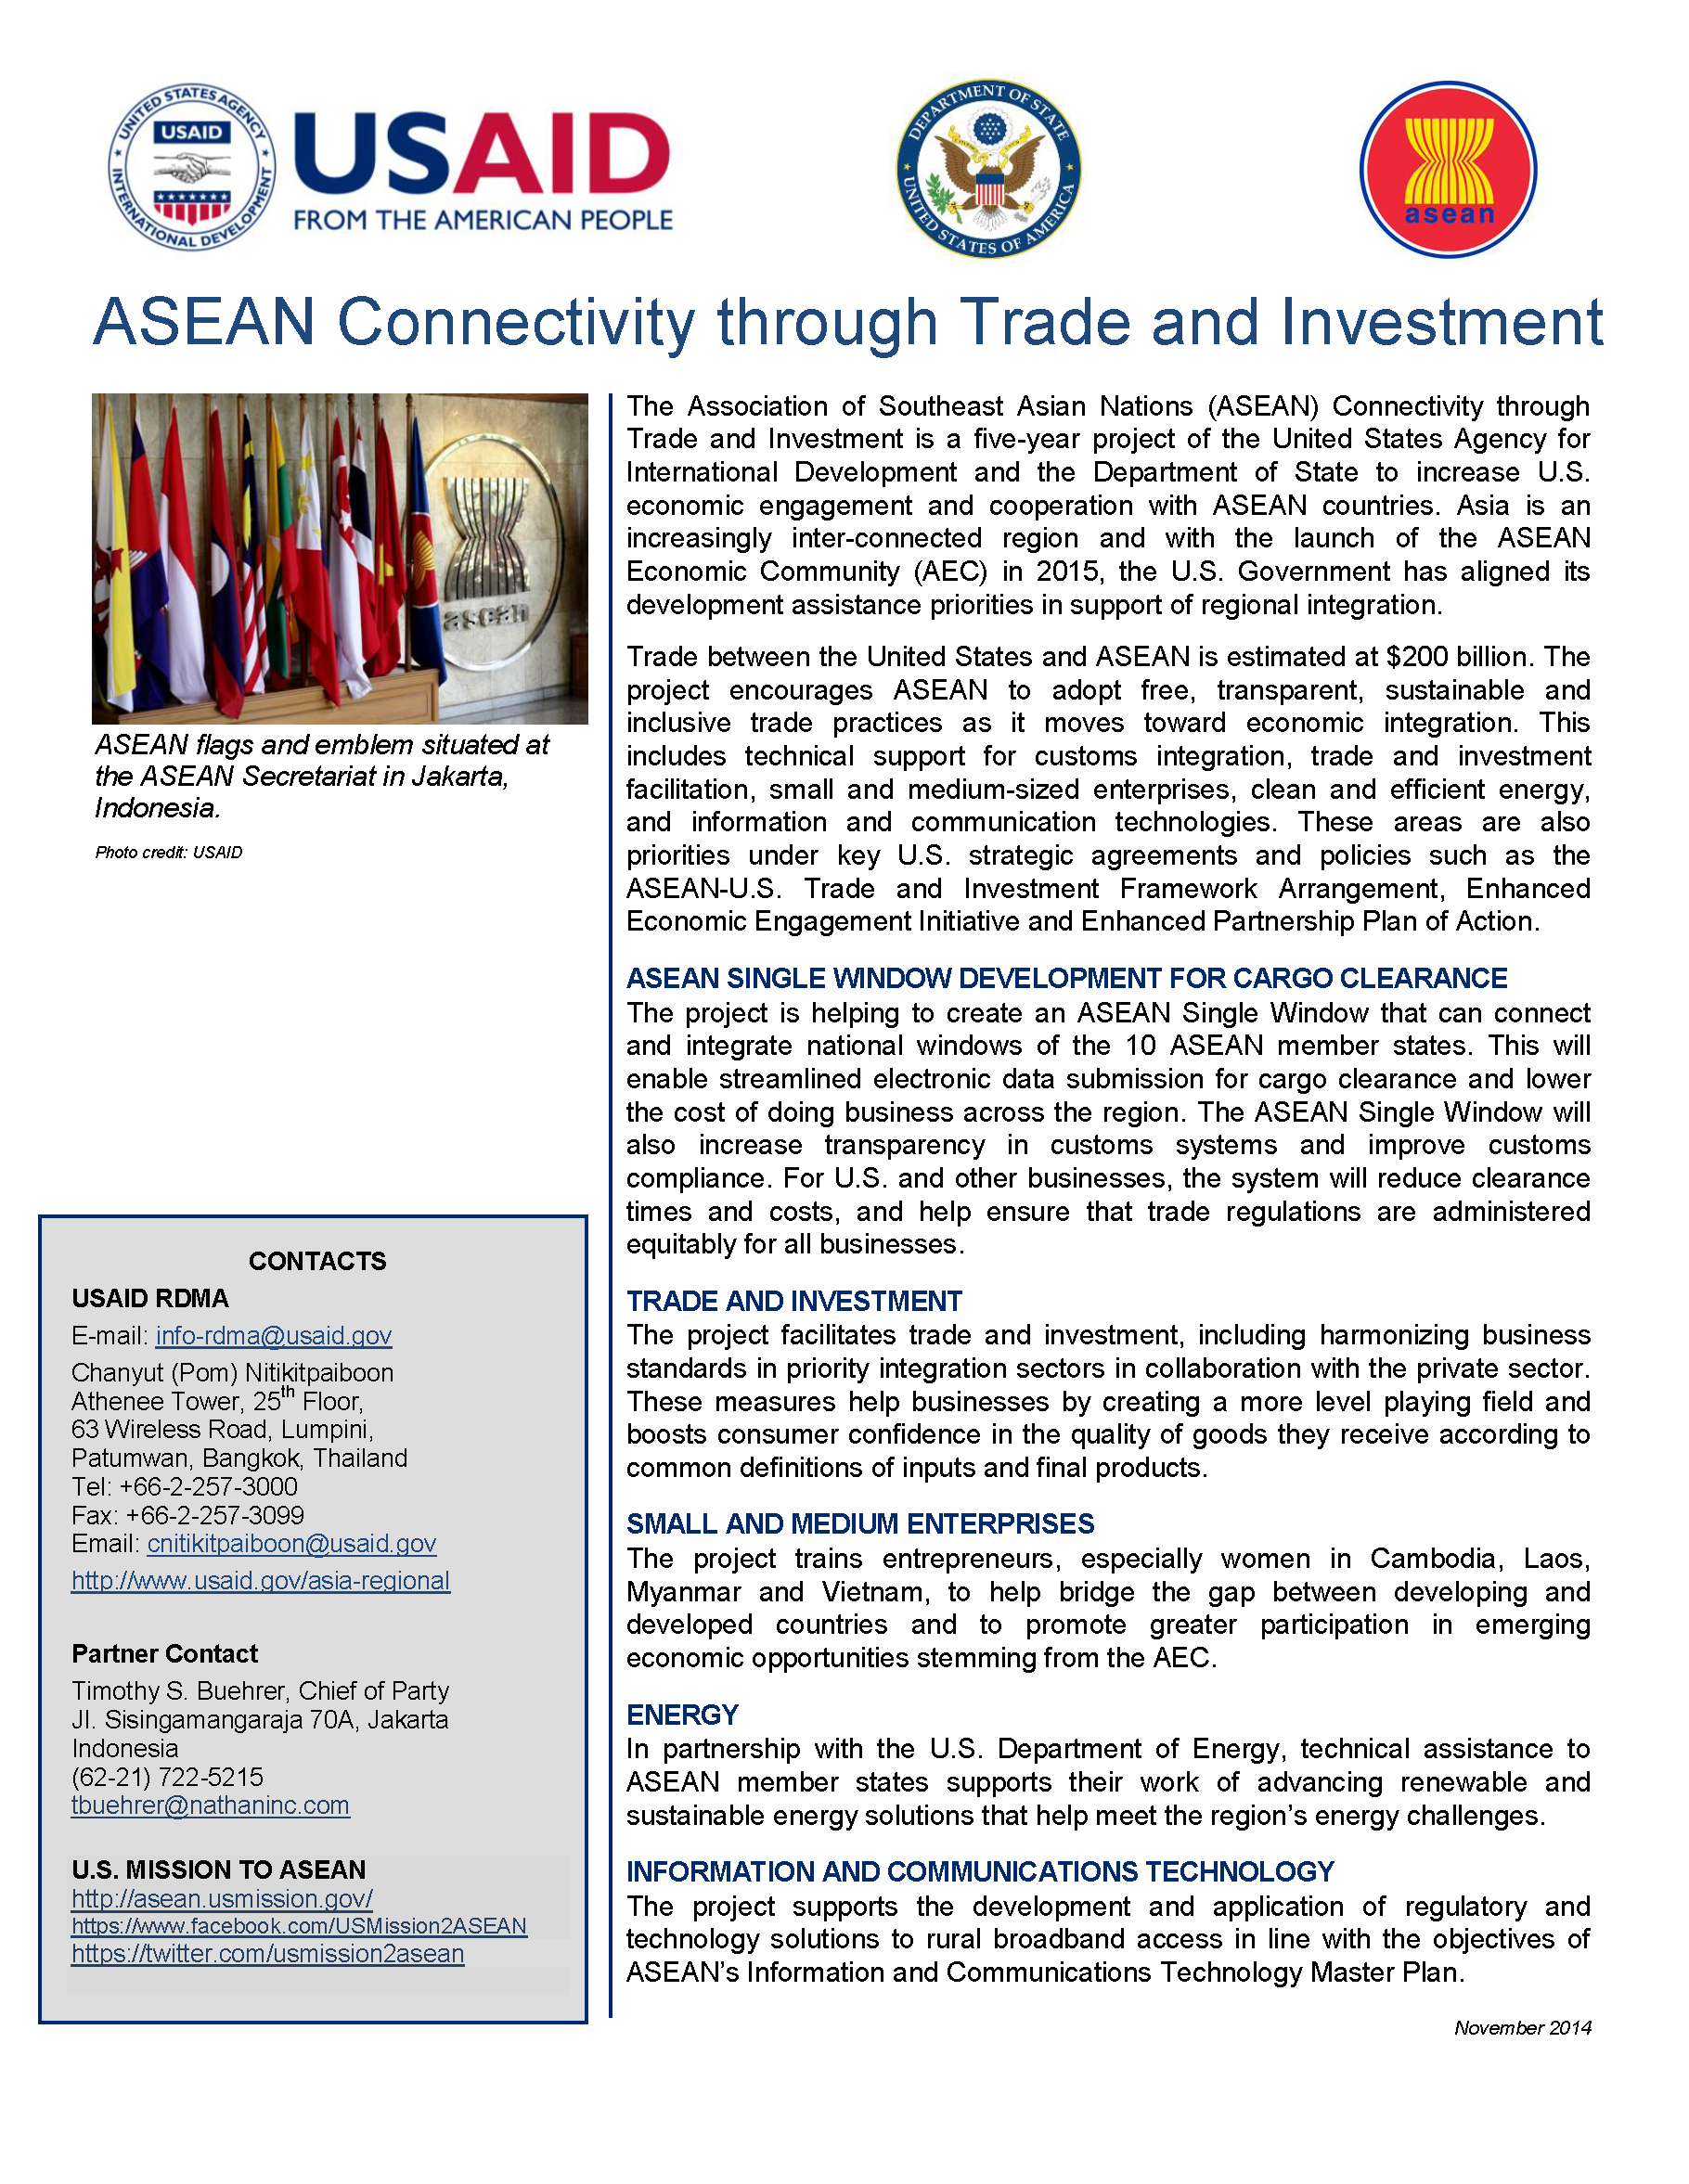 ASEAN Connectivity through Trade and Investment